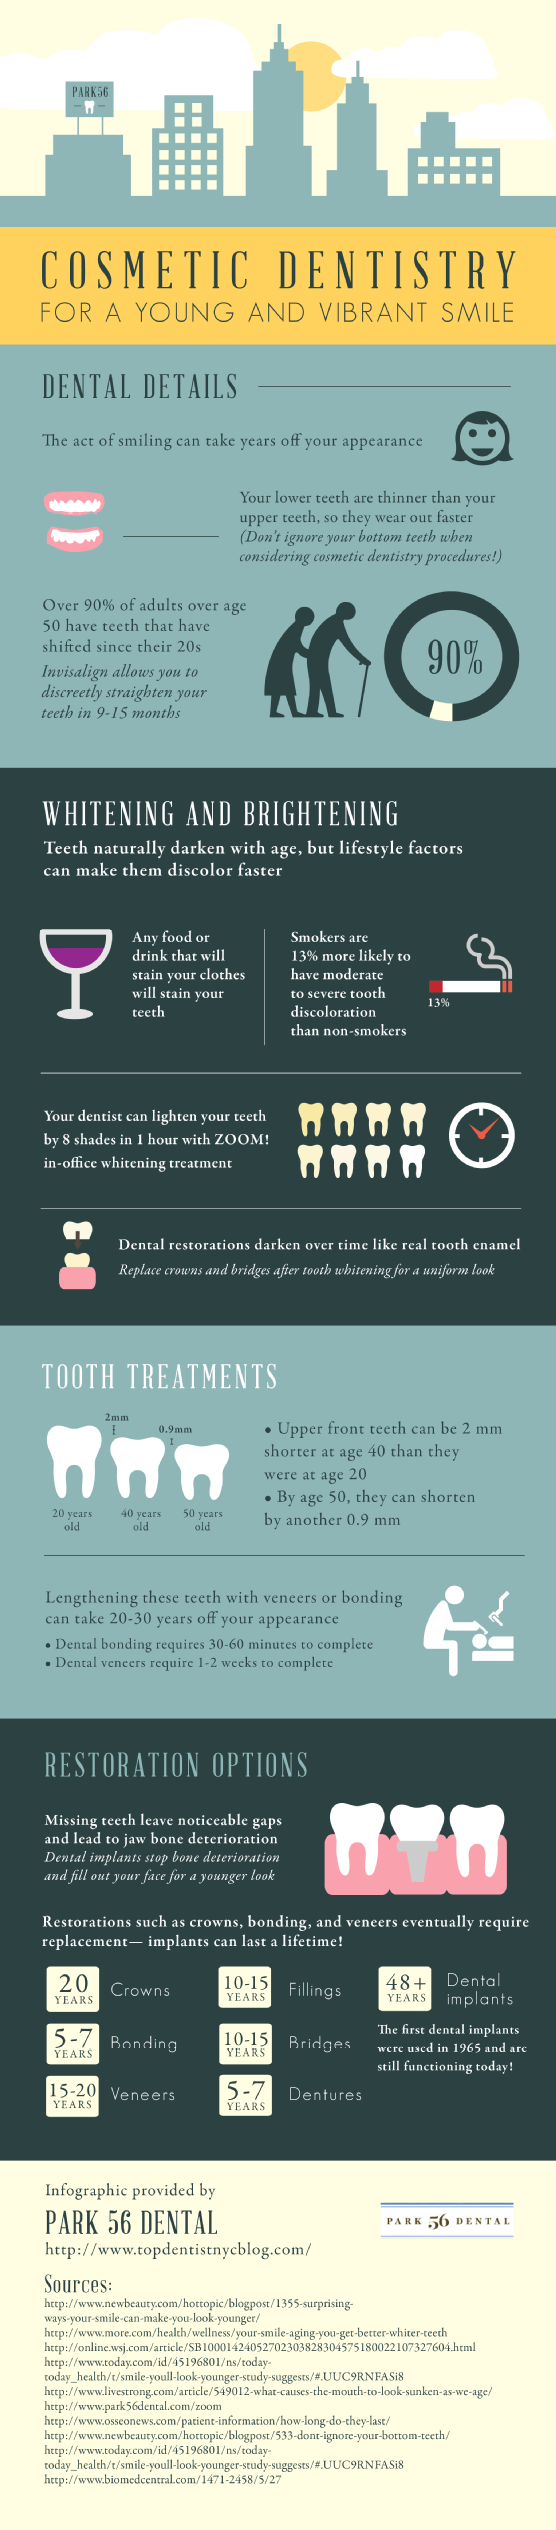 Cosmetic-Dentistry-Infographic